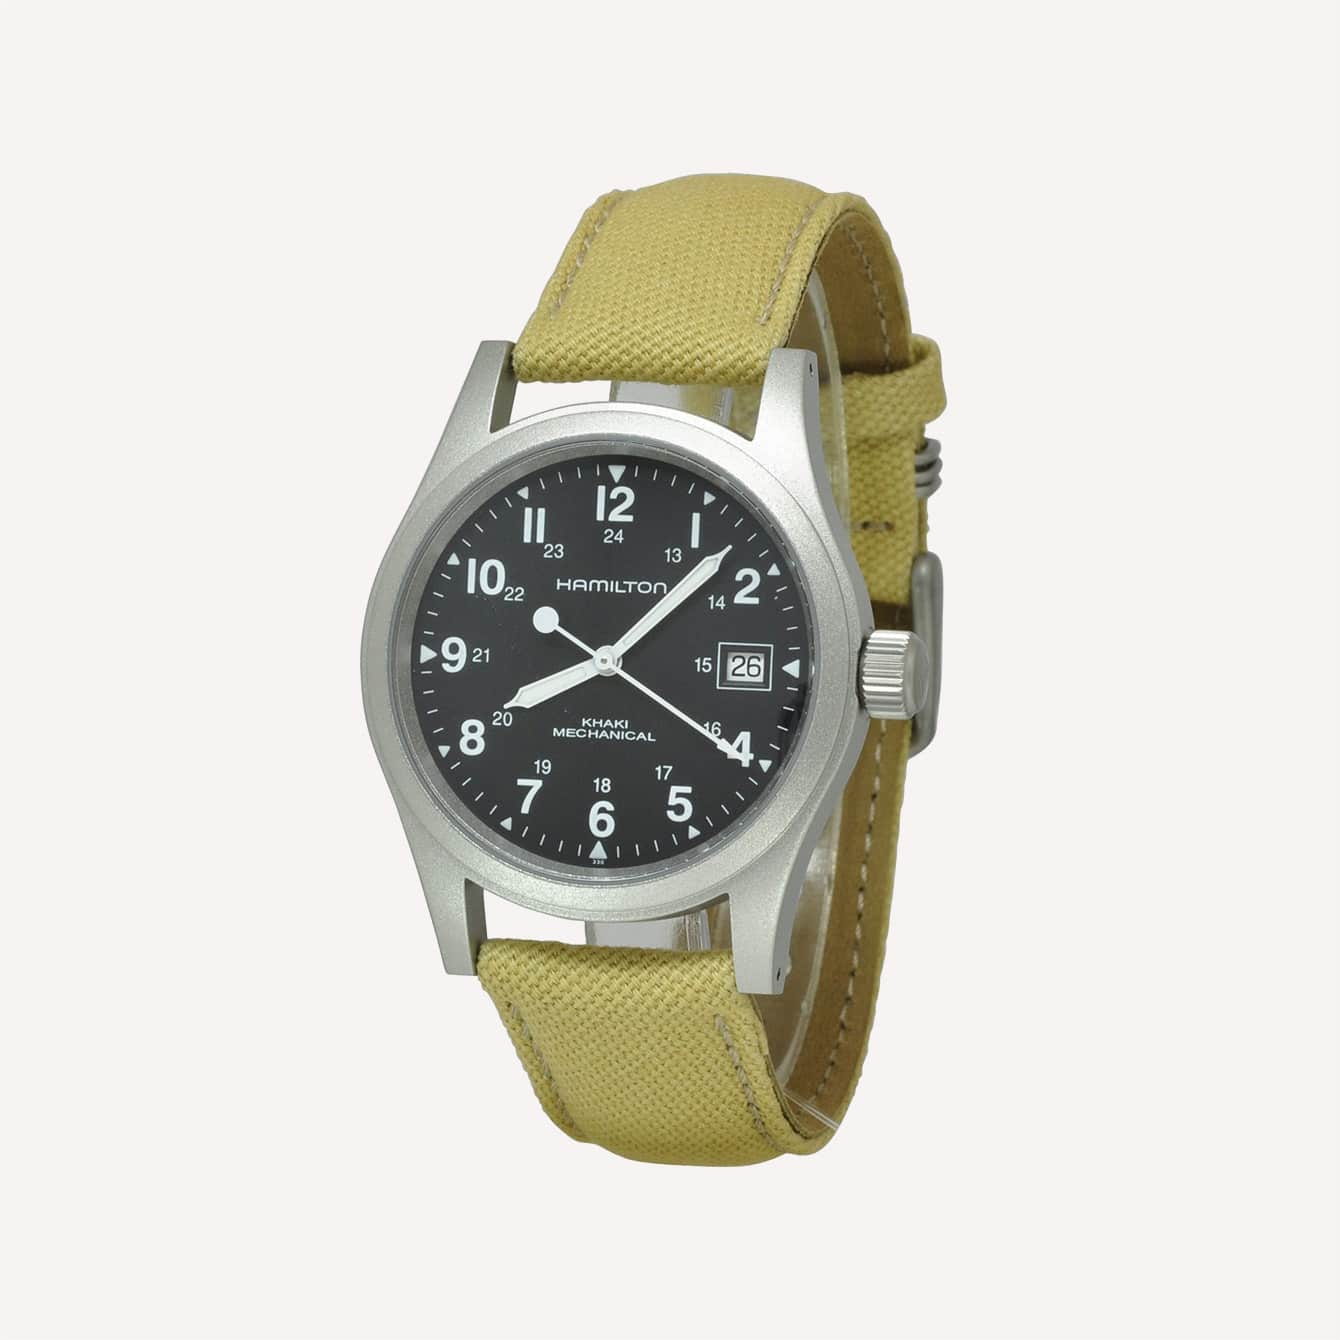 Hamilton Khaki Field Officer Mechanical 38mm